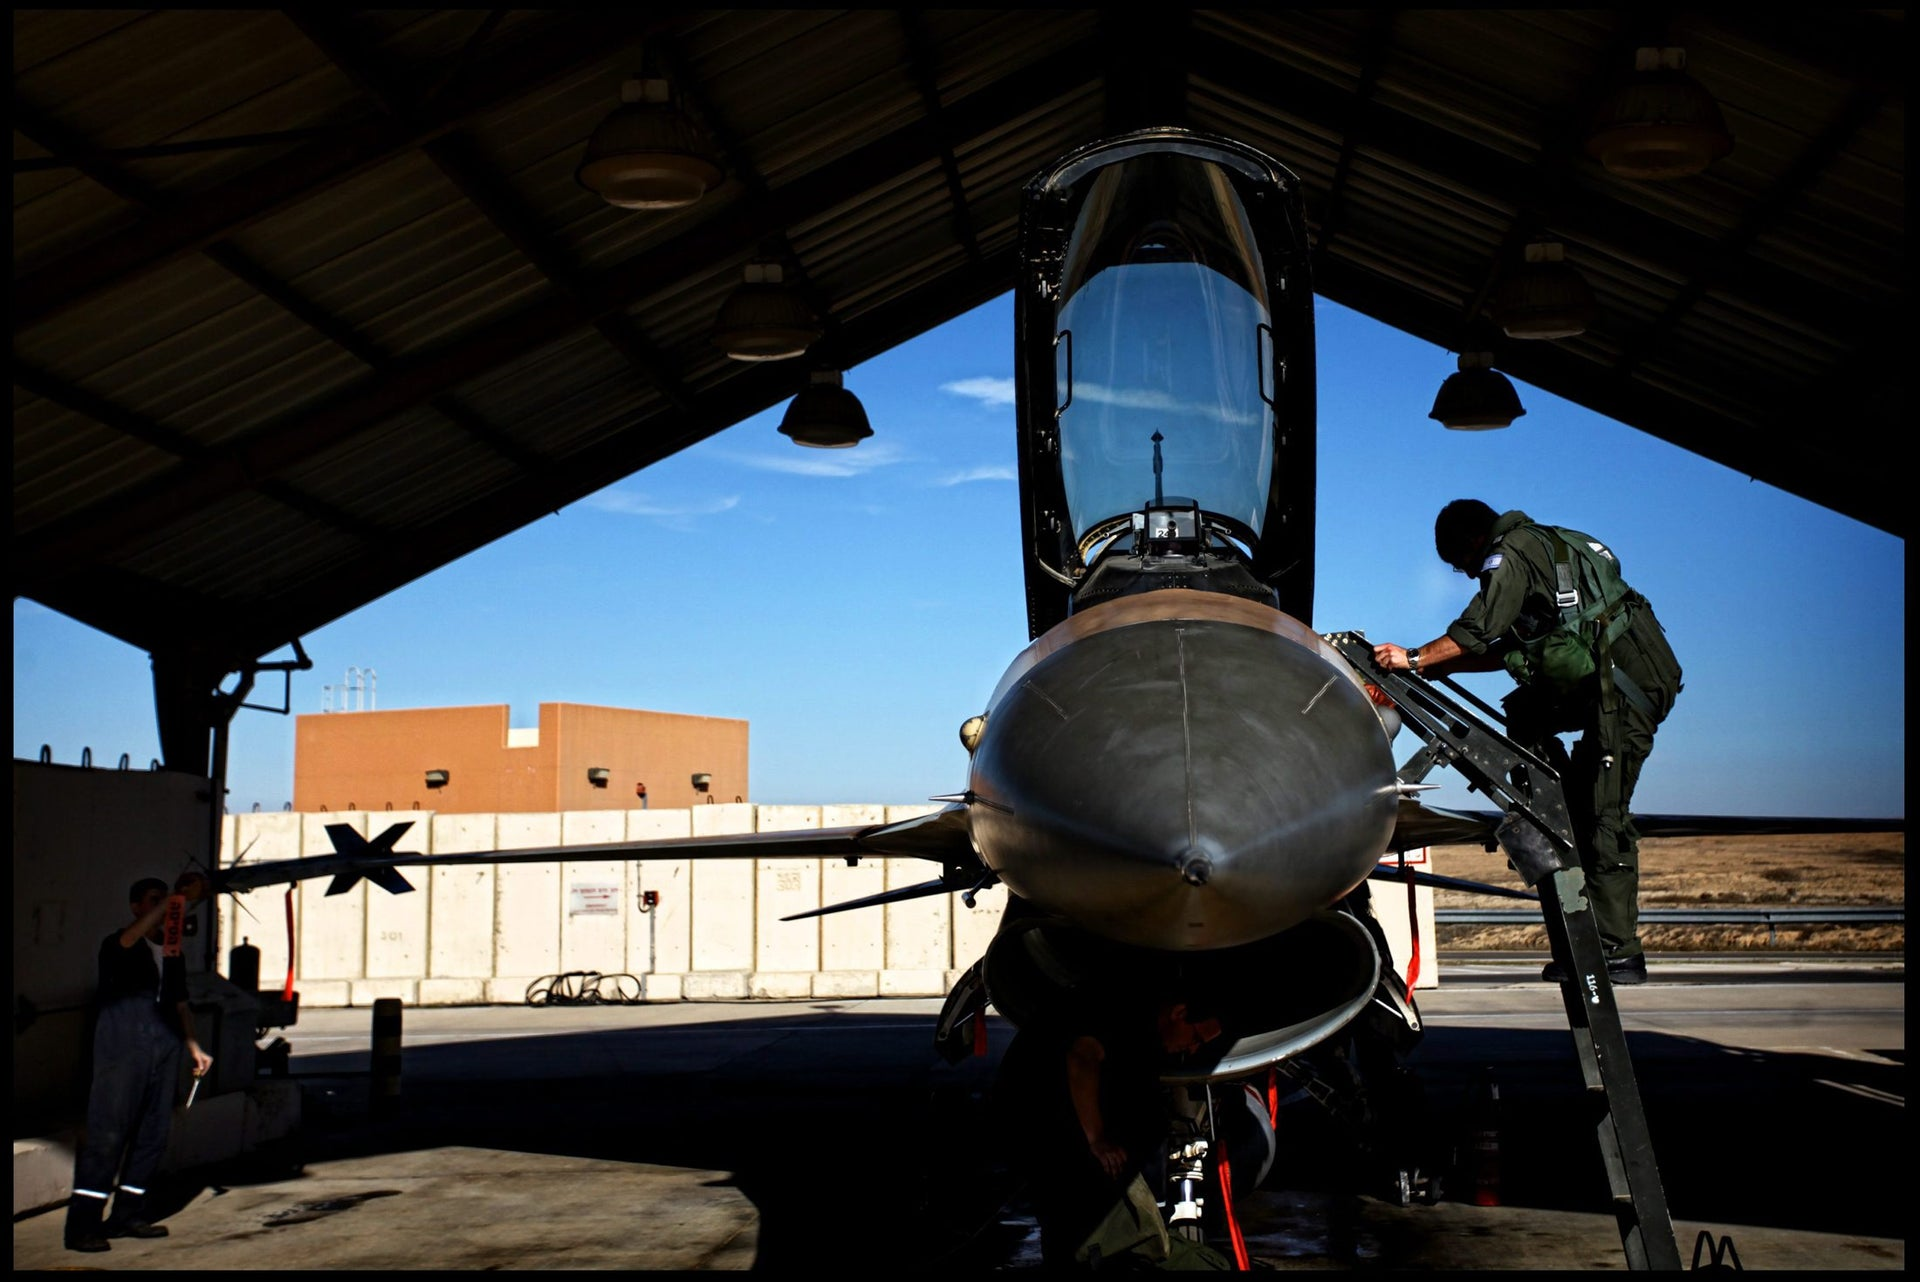 """A pilot climbs into an F-16 """"Netz"""" (Hawk) fighter plane at the Israel Air Force's Nevatim base in 2011."""